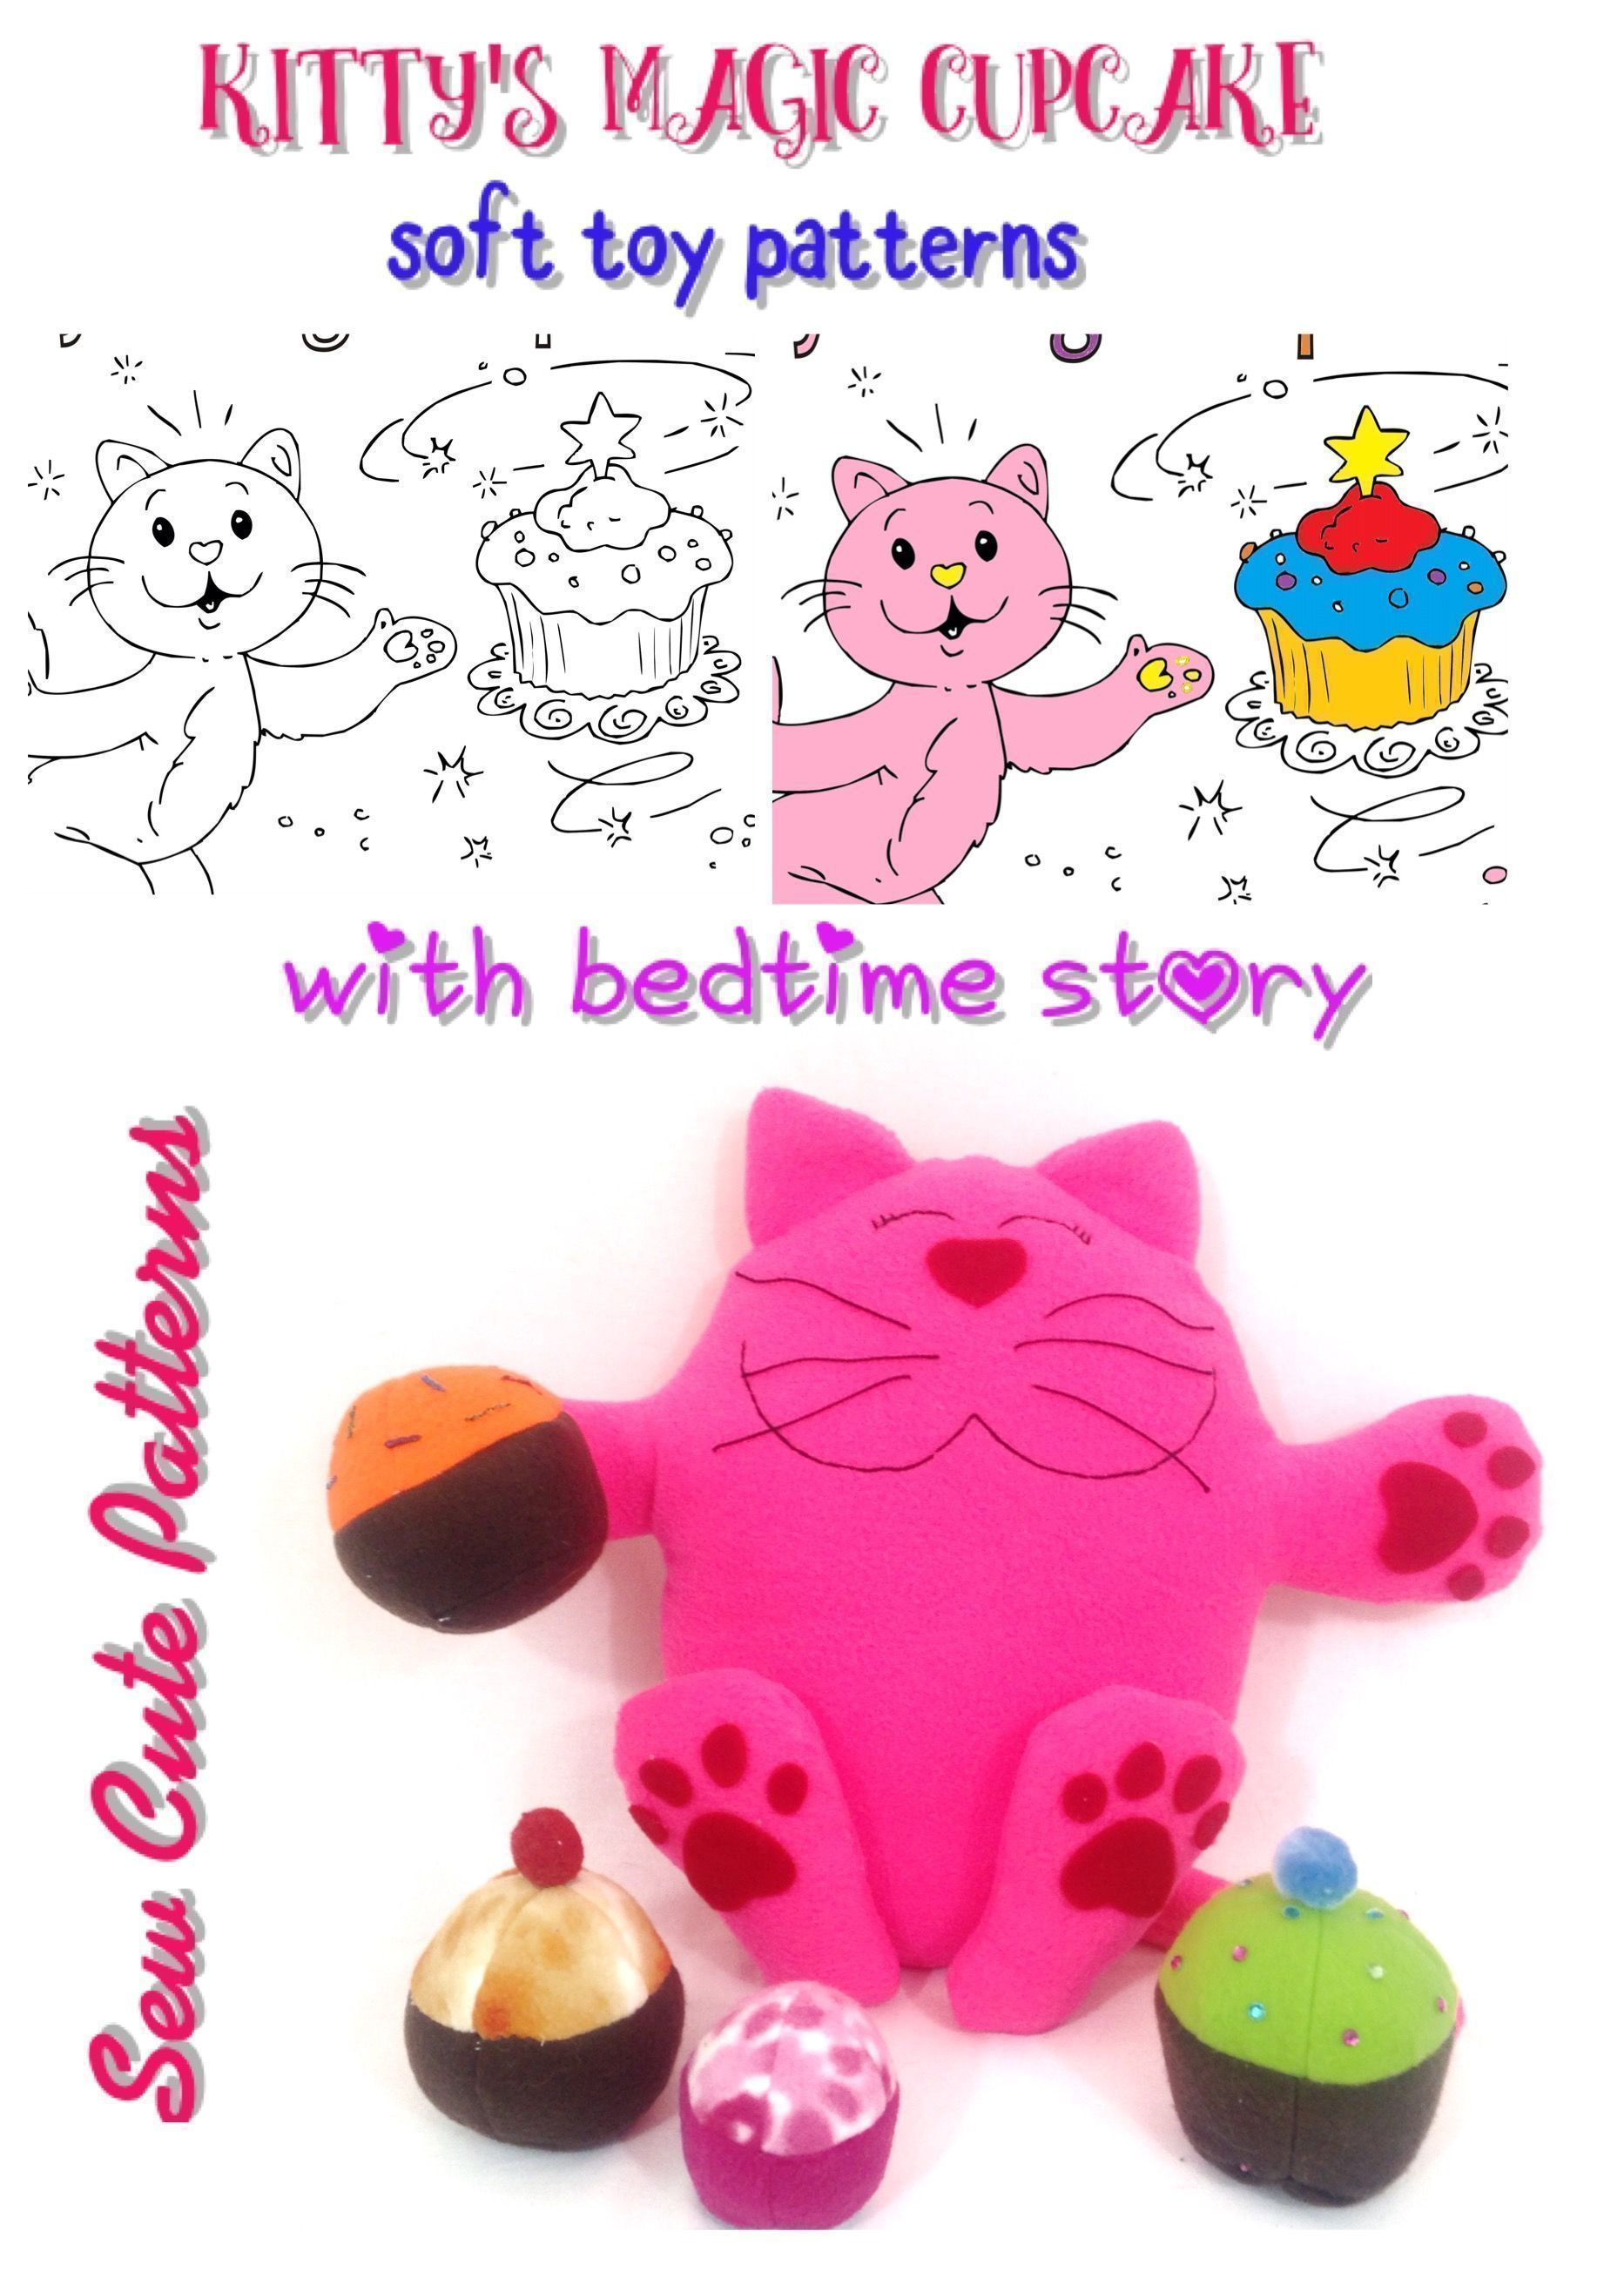 Soft toy pattern book includes a cat pattern and plushie cupcake